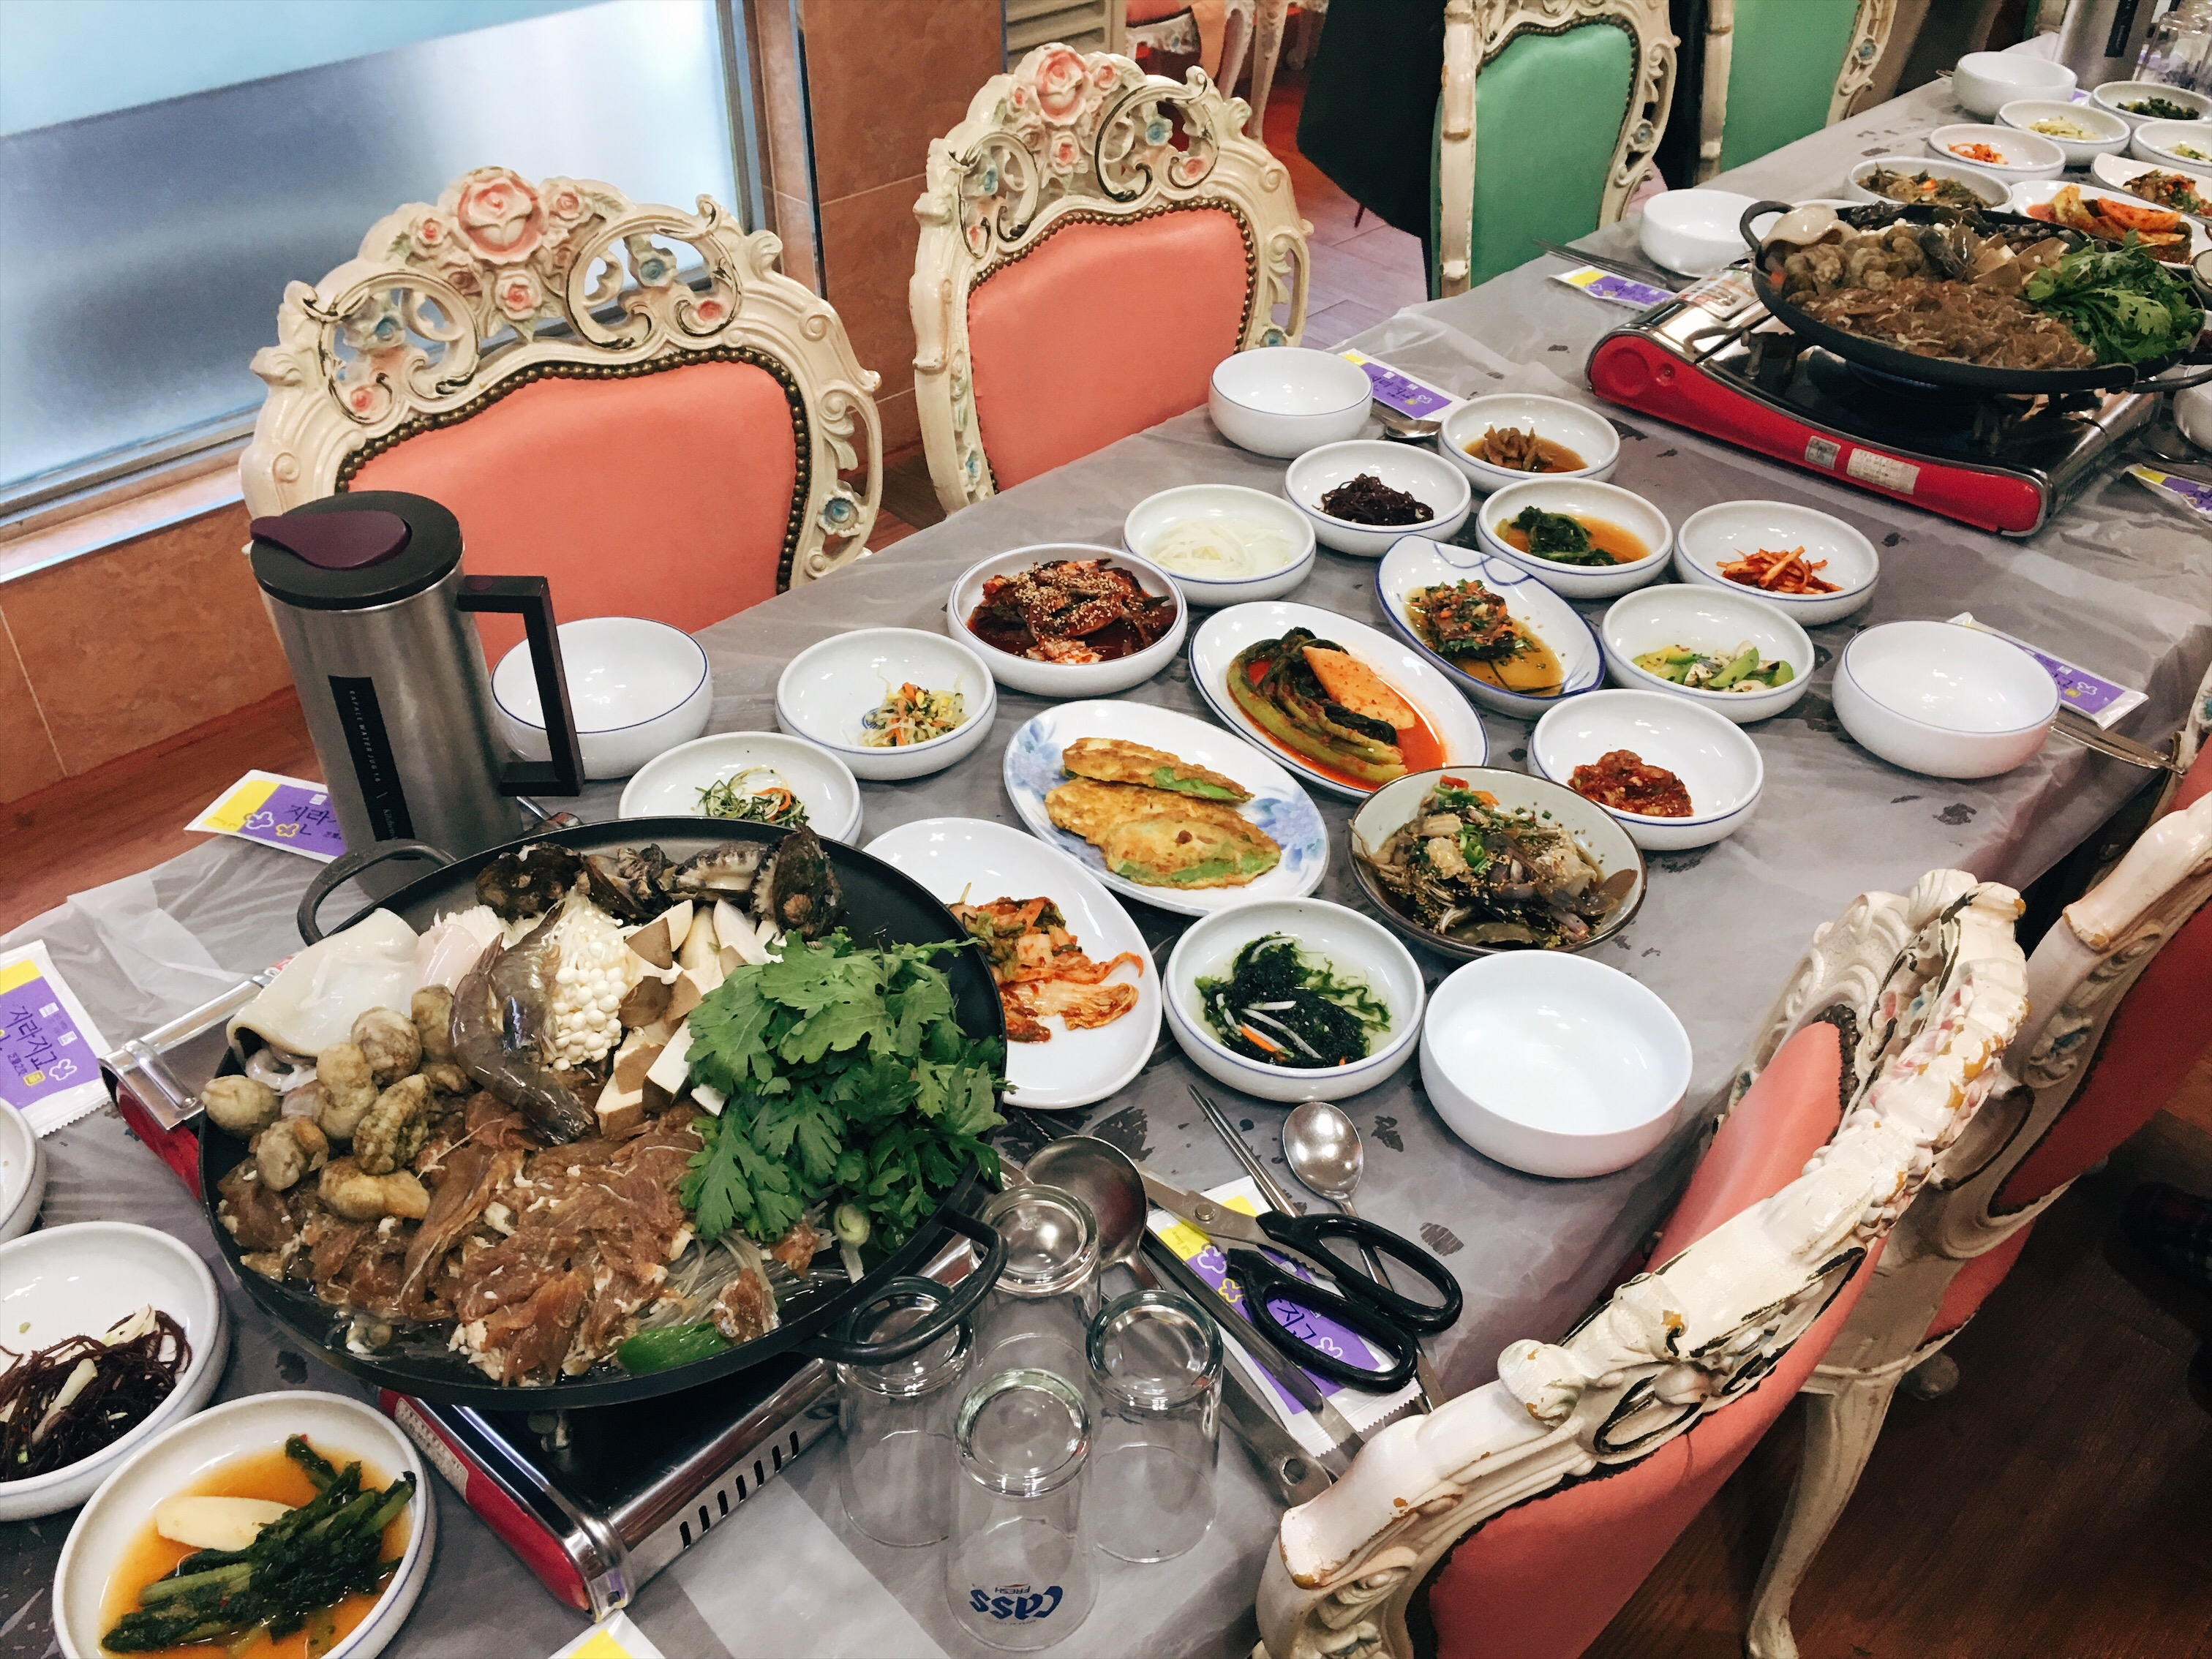 ed98ea8d 0084 403c b7cd 742ae7719d0f - WoW Korea Winter Wonderland Day 3: The Flavours of Yeosu City